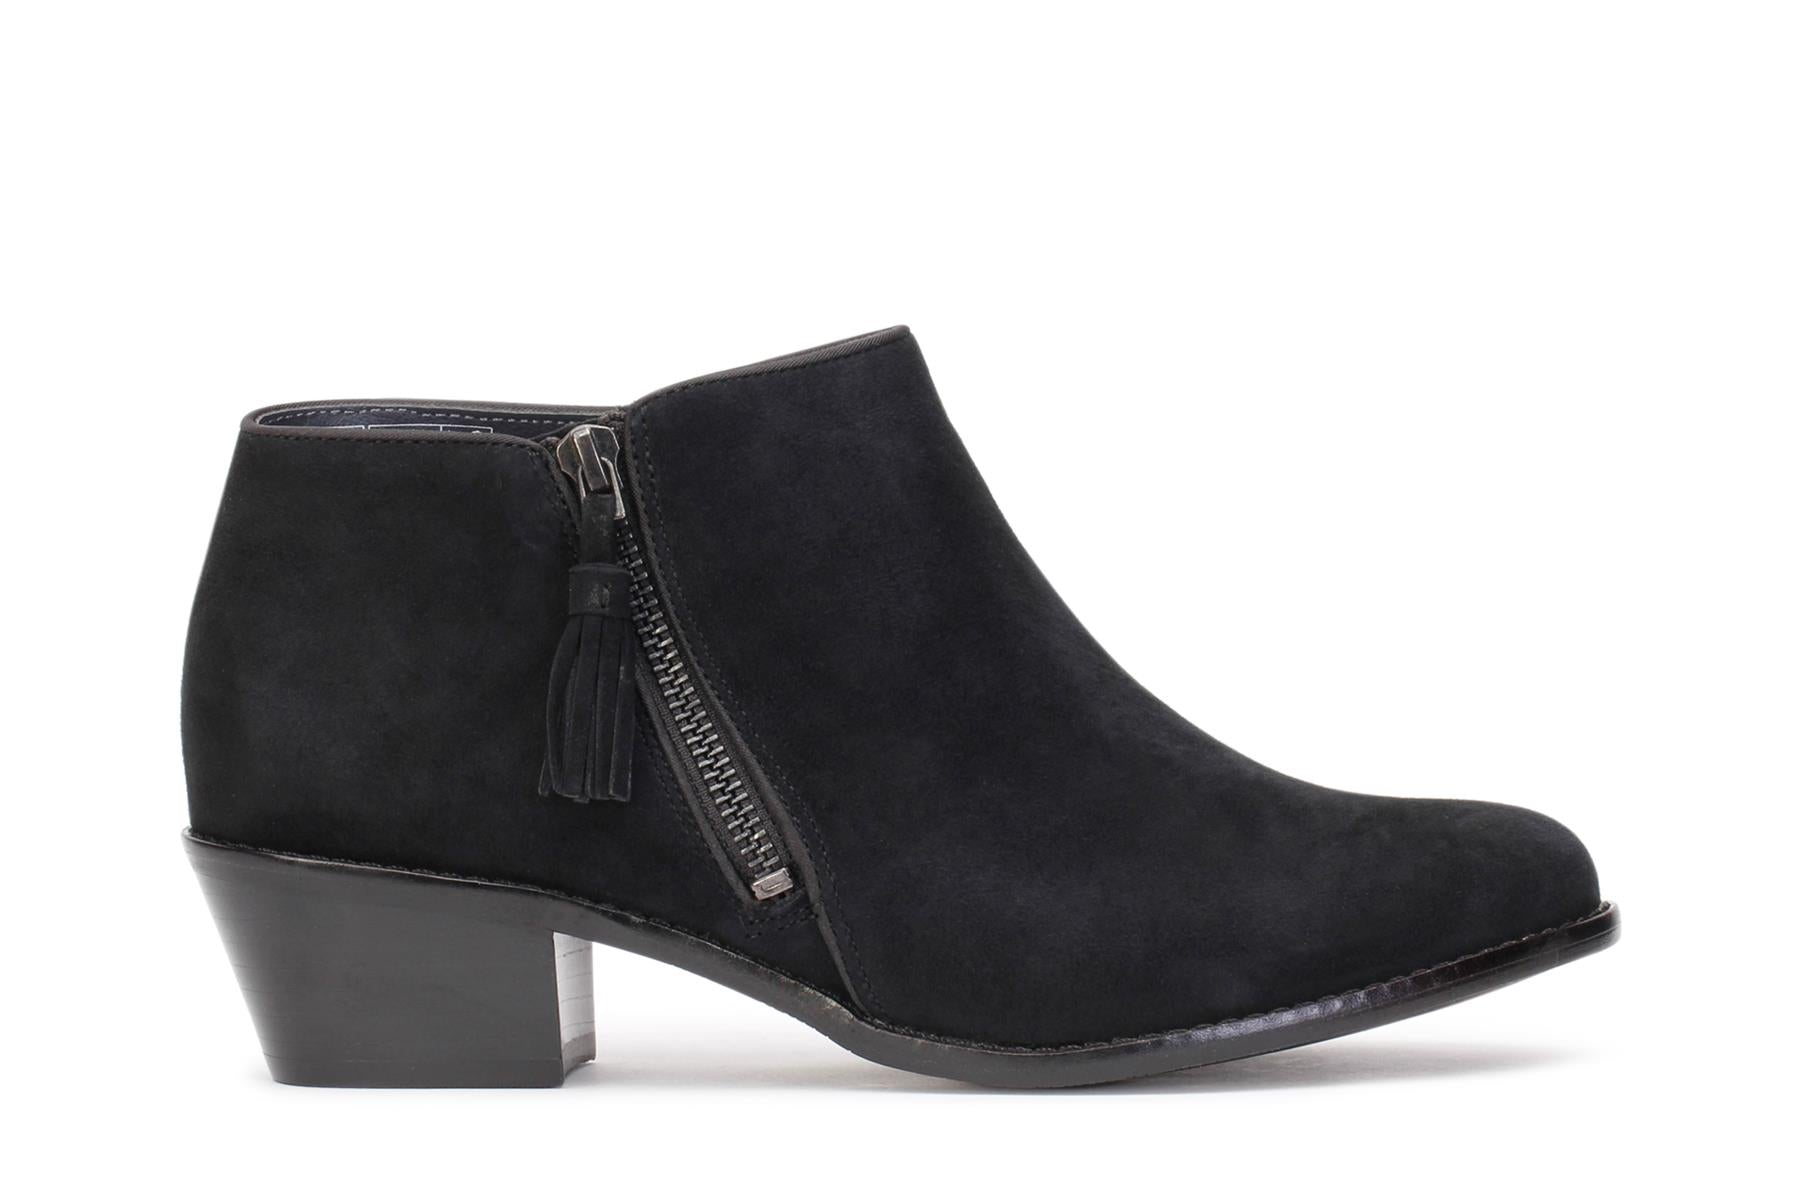 vionic-womens-ankle-boots-serena-black-suede-10000681-main